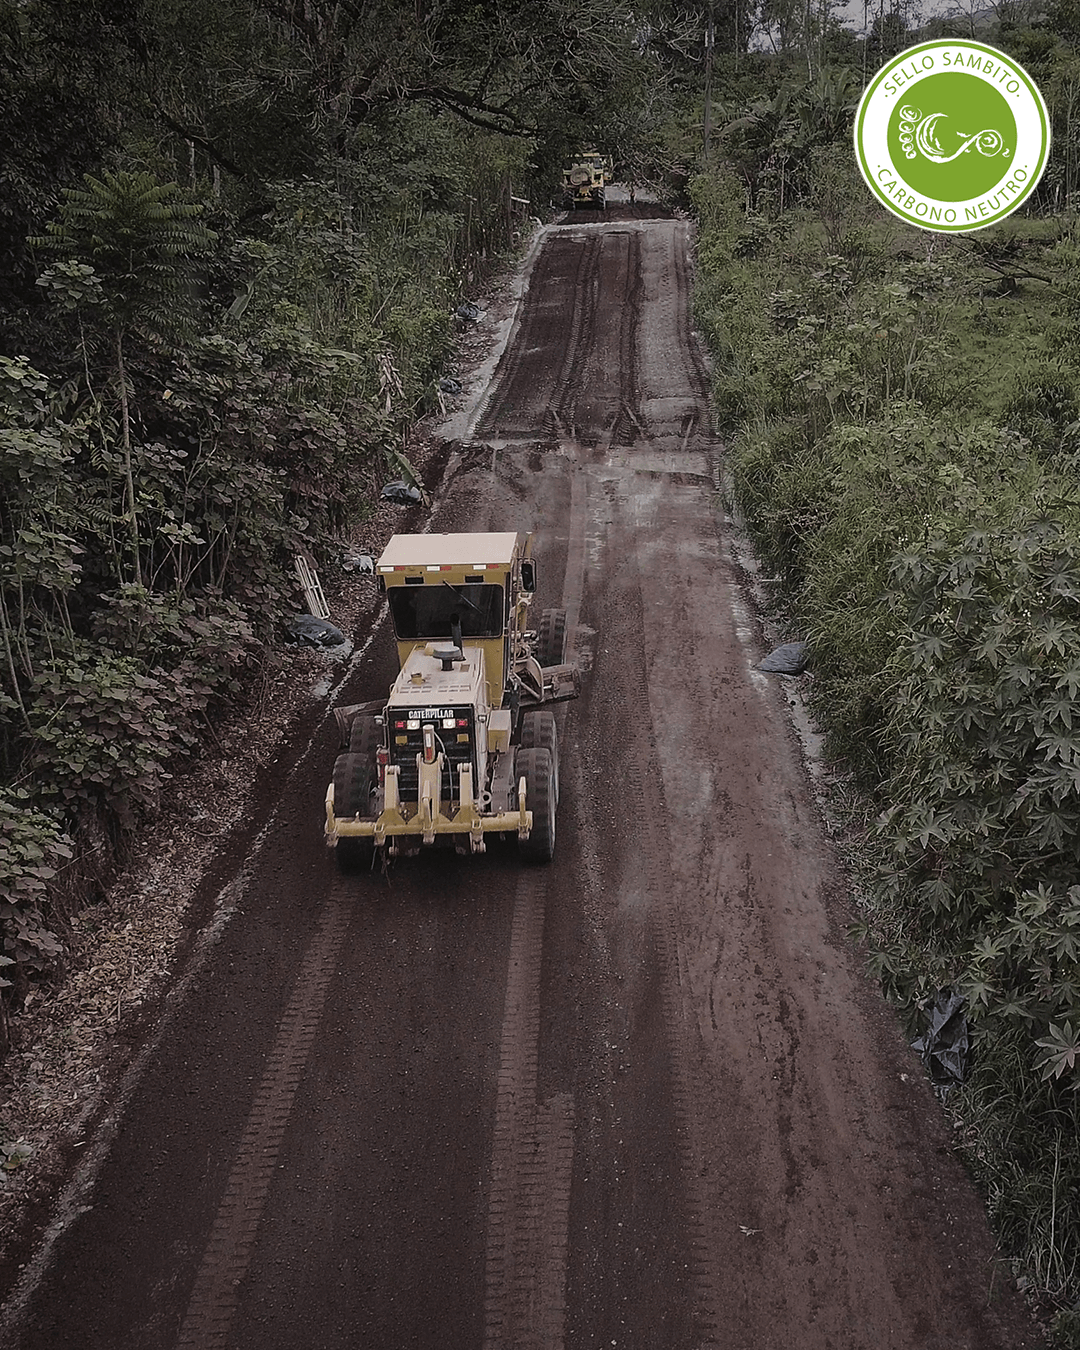 Our base road solution now has a neutral carbon footprint endorsed by Sambito, because we managed to reduce greenhouse gas emissions by 51% compared to the traditional method. Galápagos is an archipelago that must watch over its ecosystem, that's why Base Vial was the ideal solution to stabilize its roads.